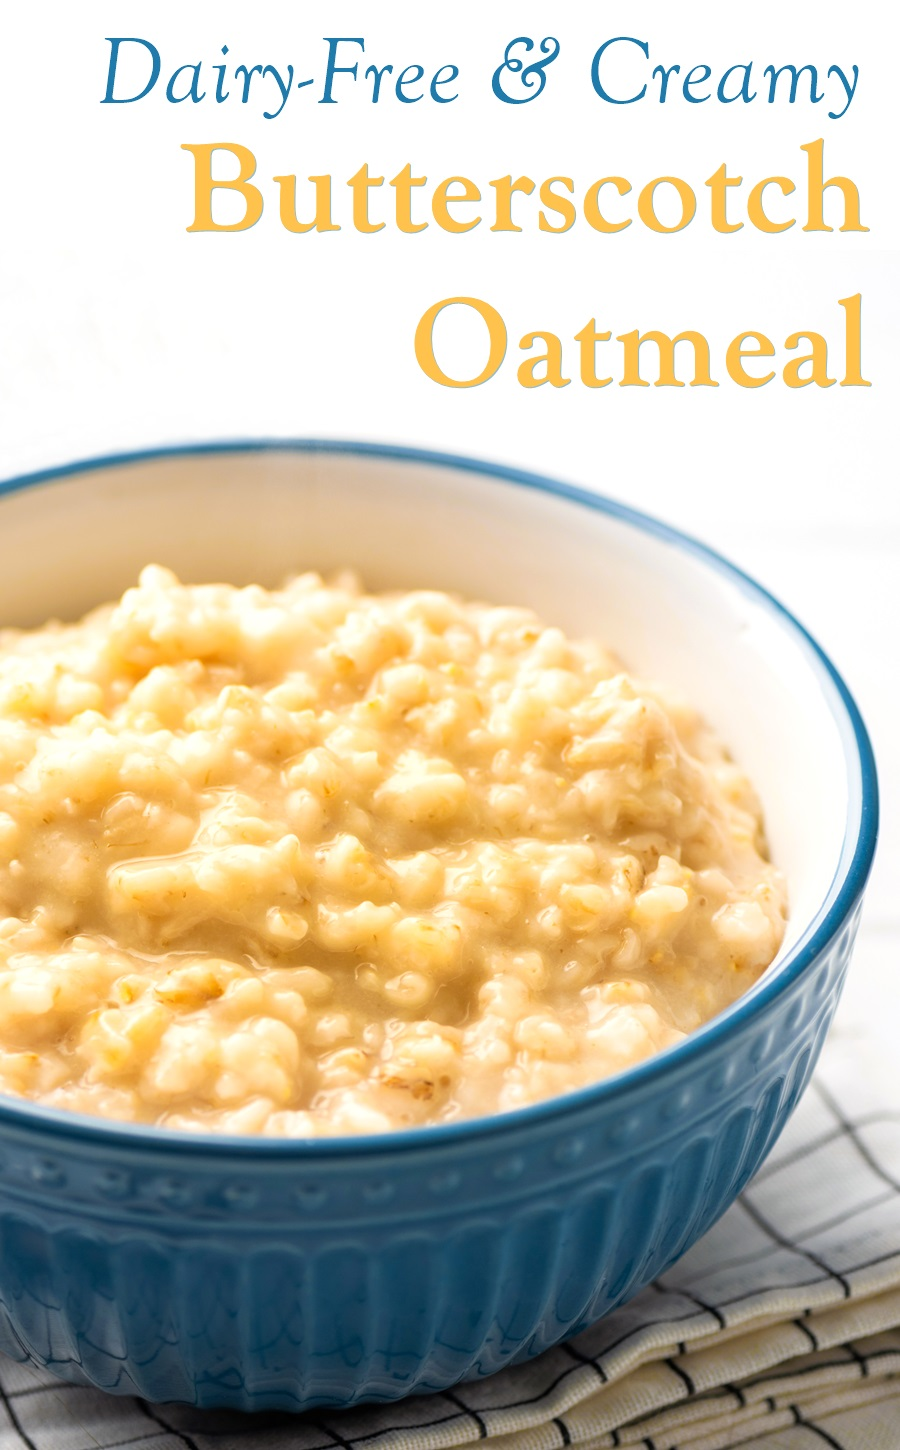 Creamy Dairy-Free Butterscotch Oatmeal Recipe with various options (Vegan, Low Sugar, Low Fat, etc)